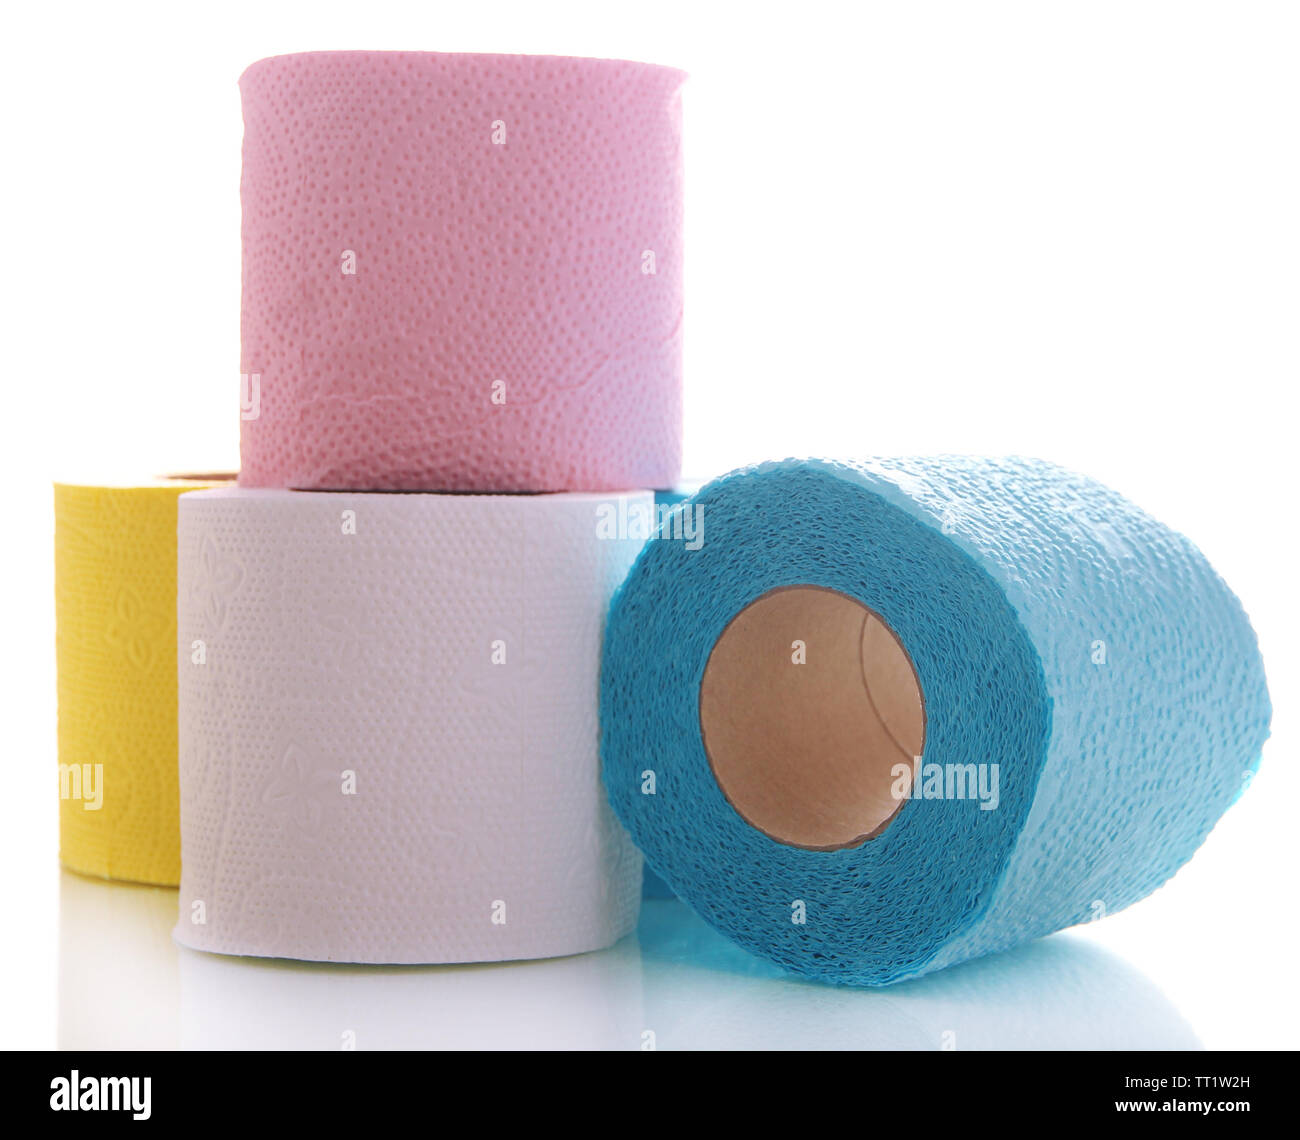 Colorful toilet paper rolls isolated on white - Stock Image